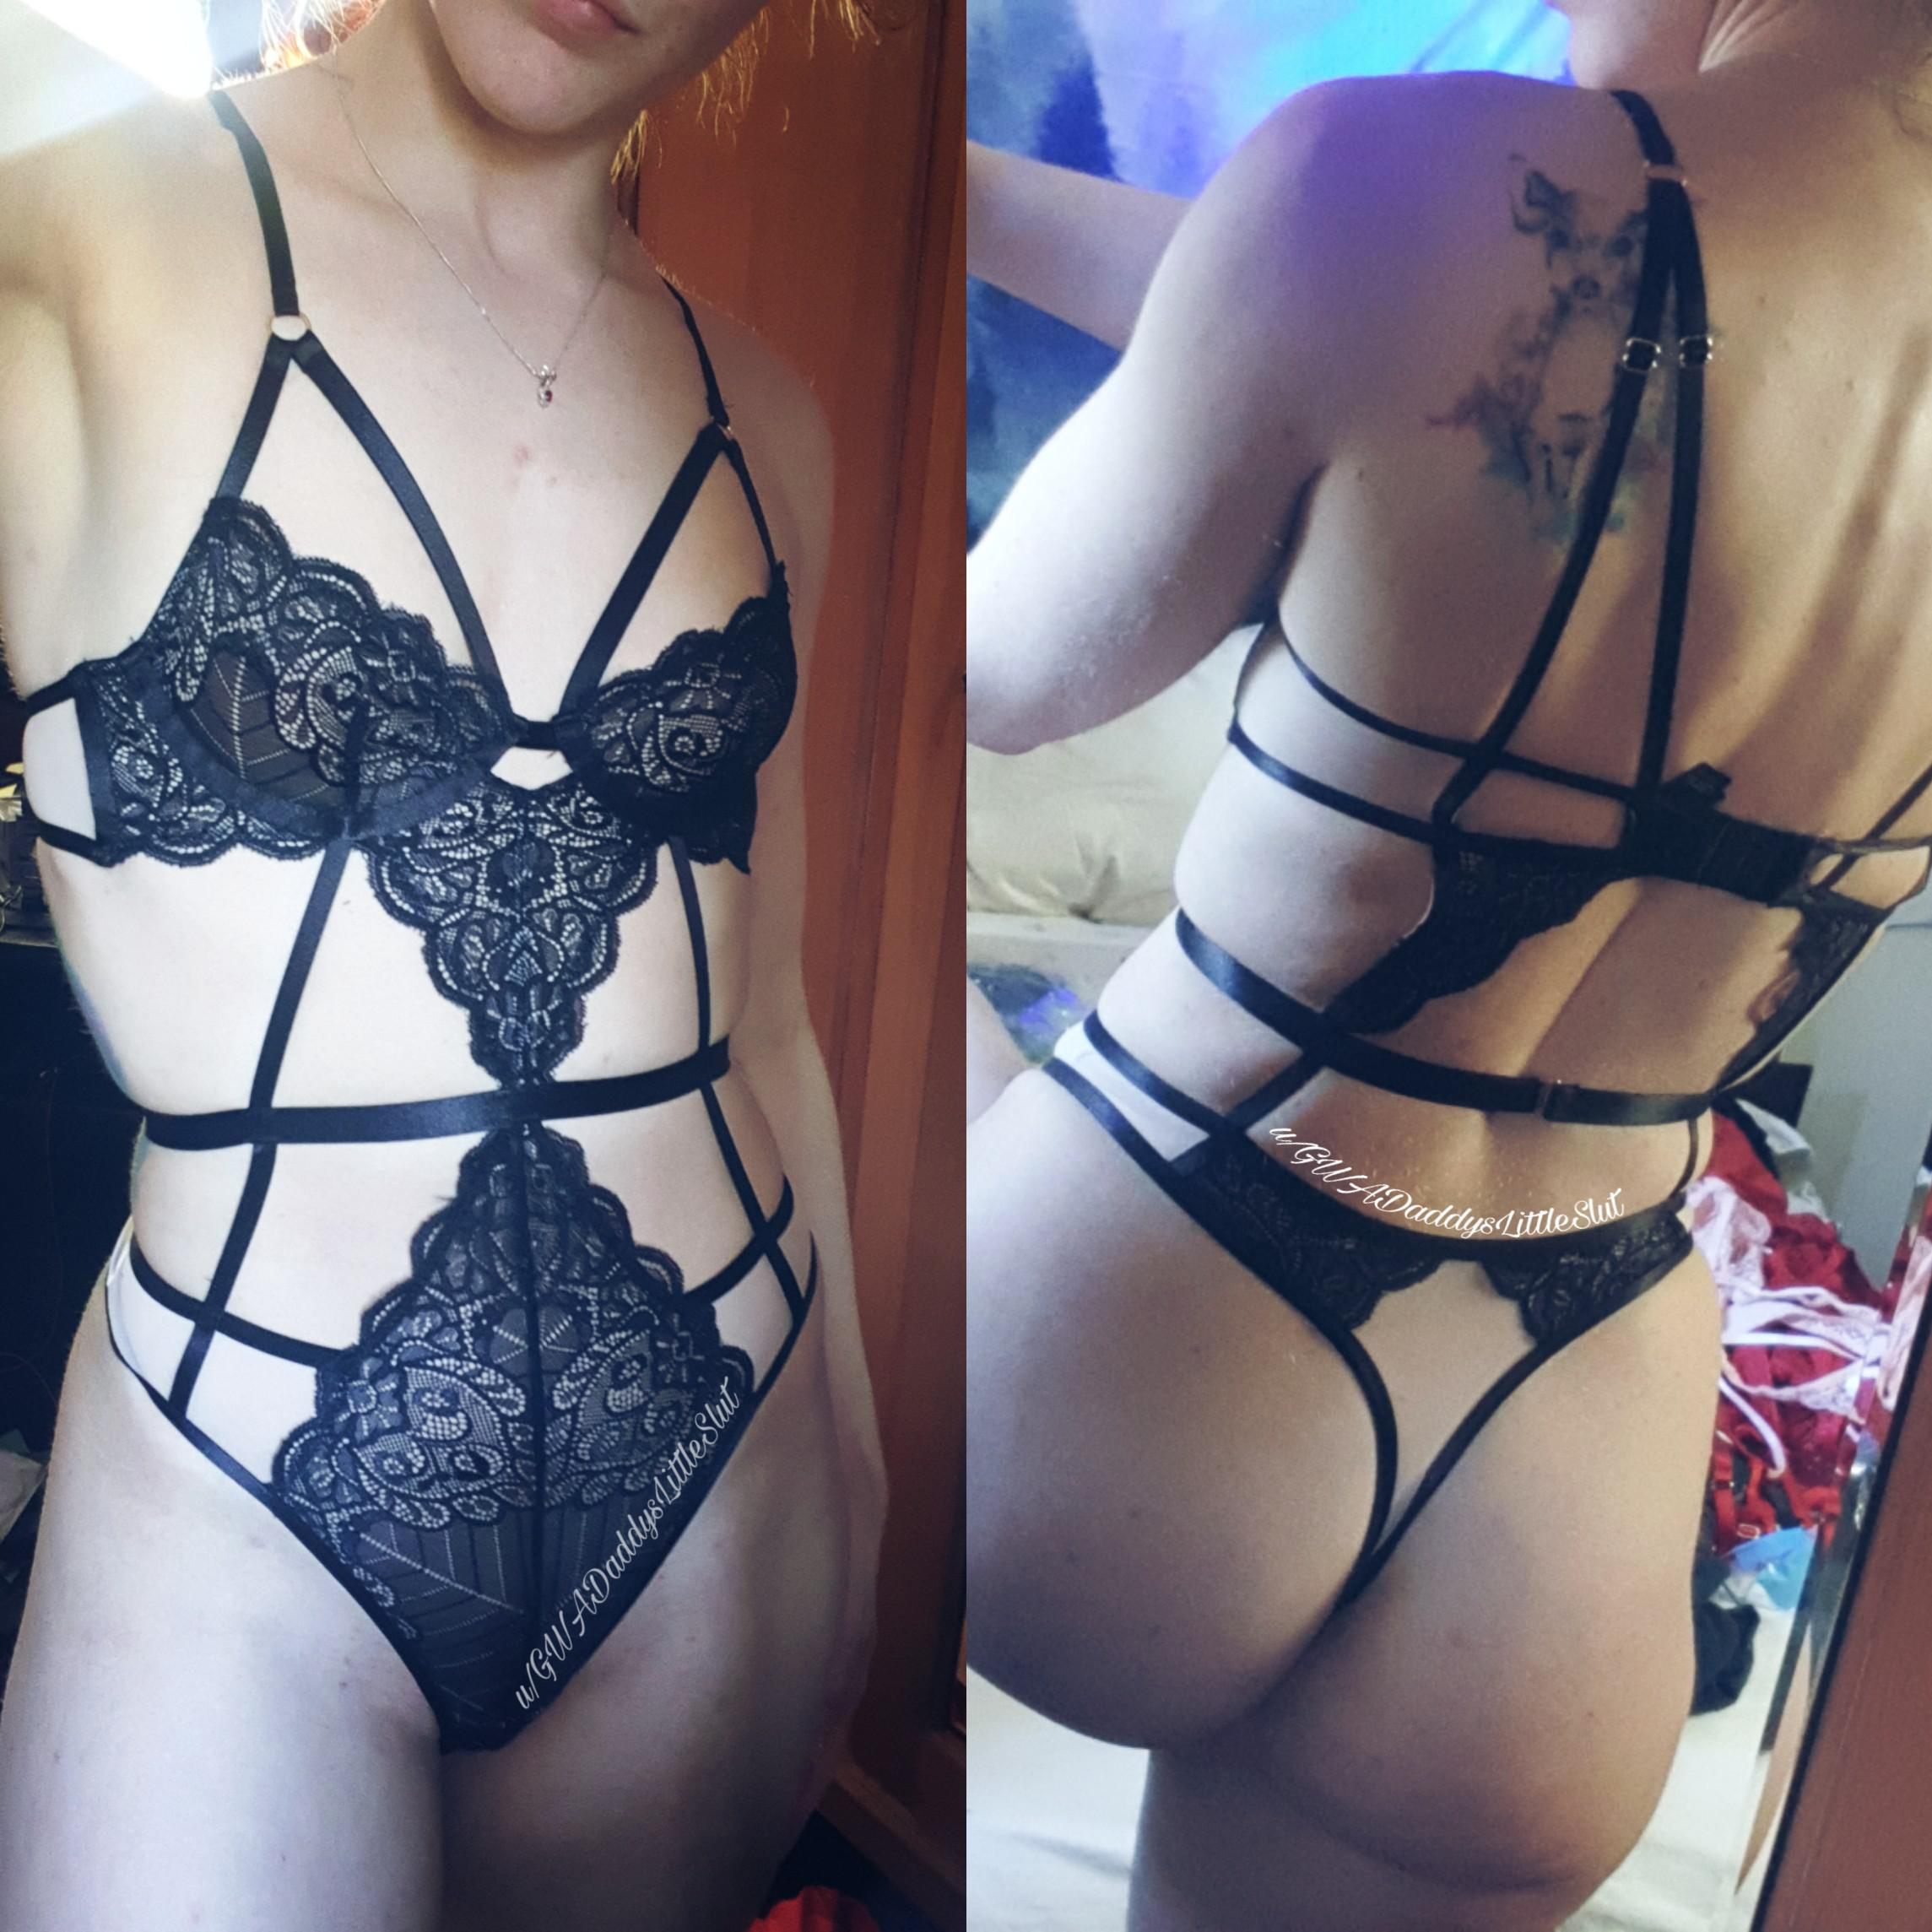 I Love This Set! Here Is Font And Back! 🥰.